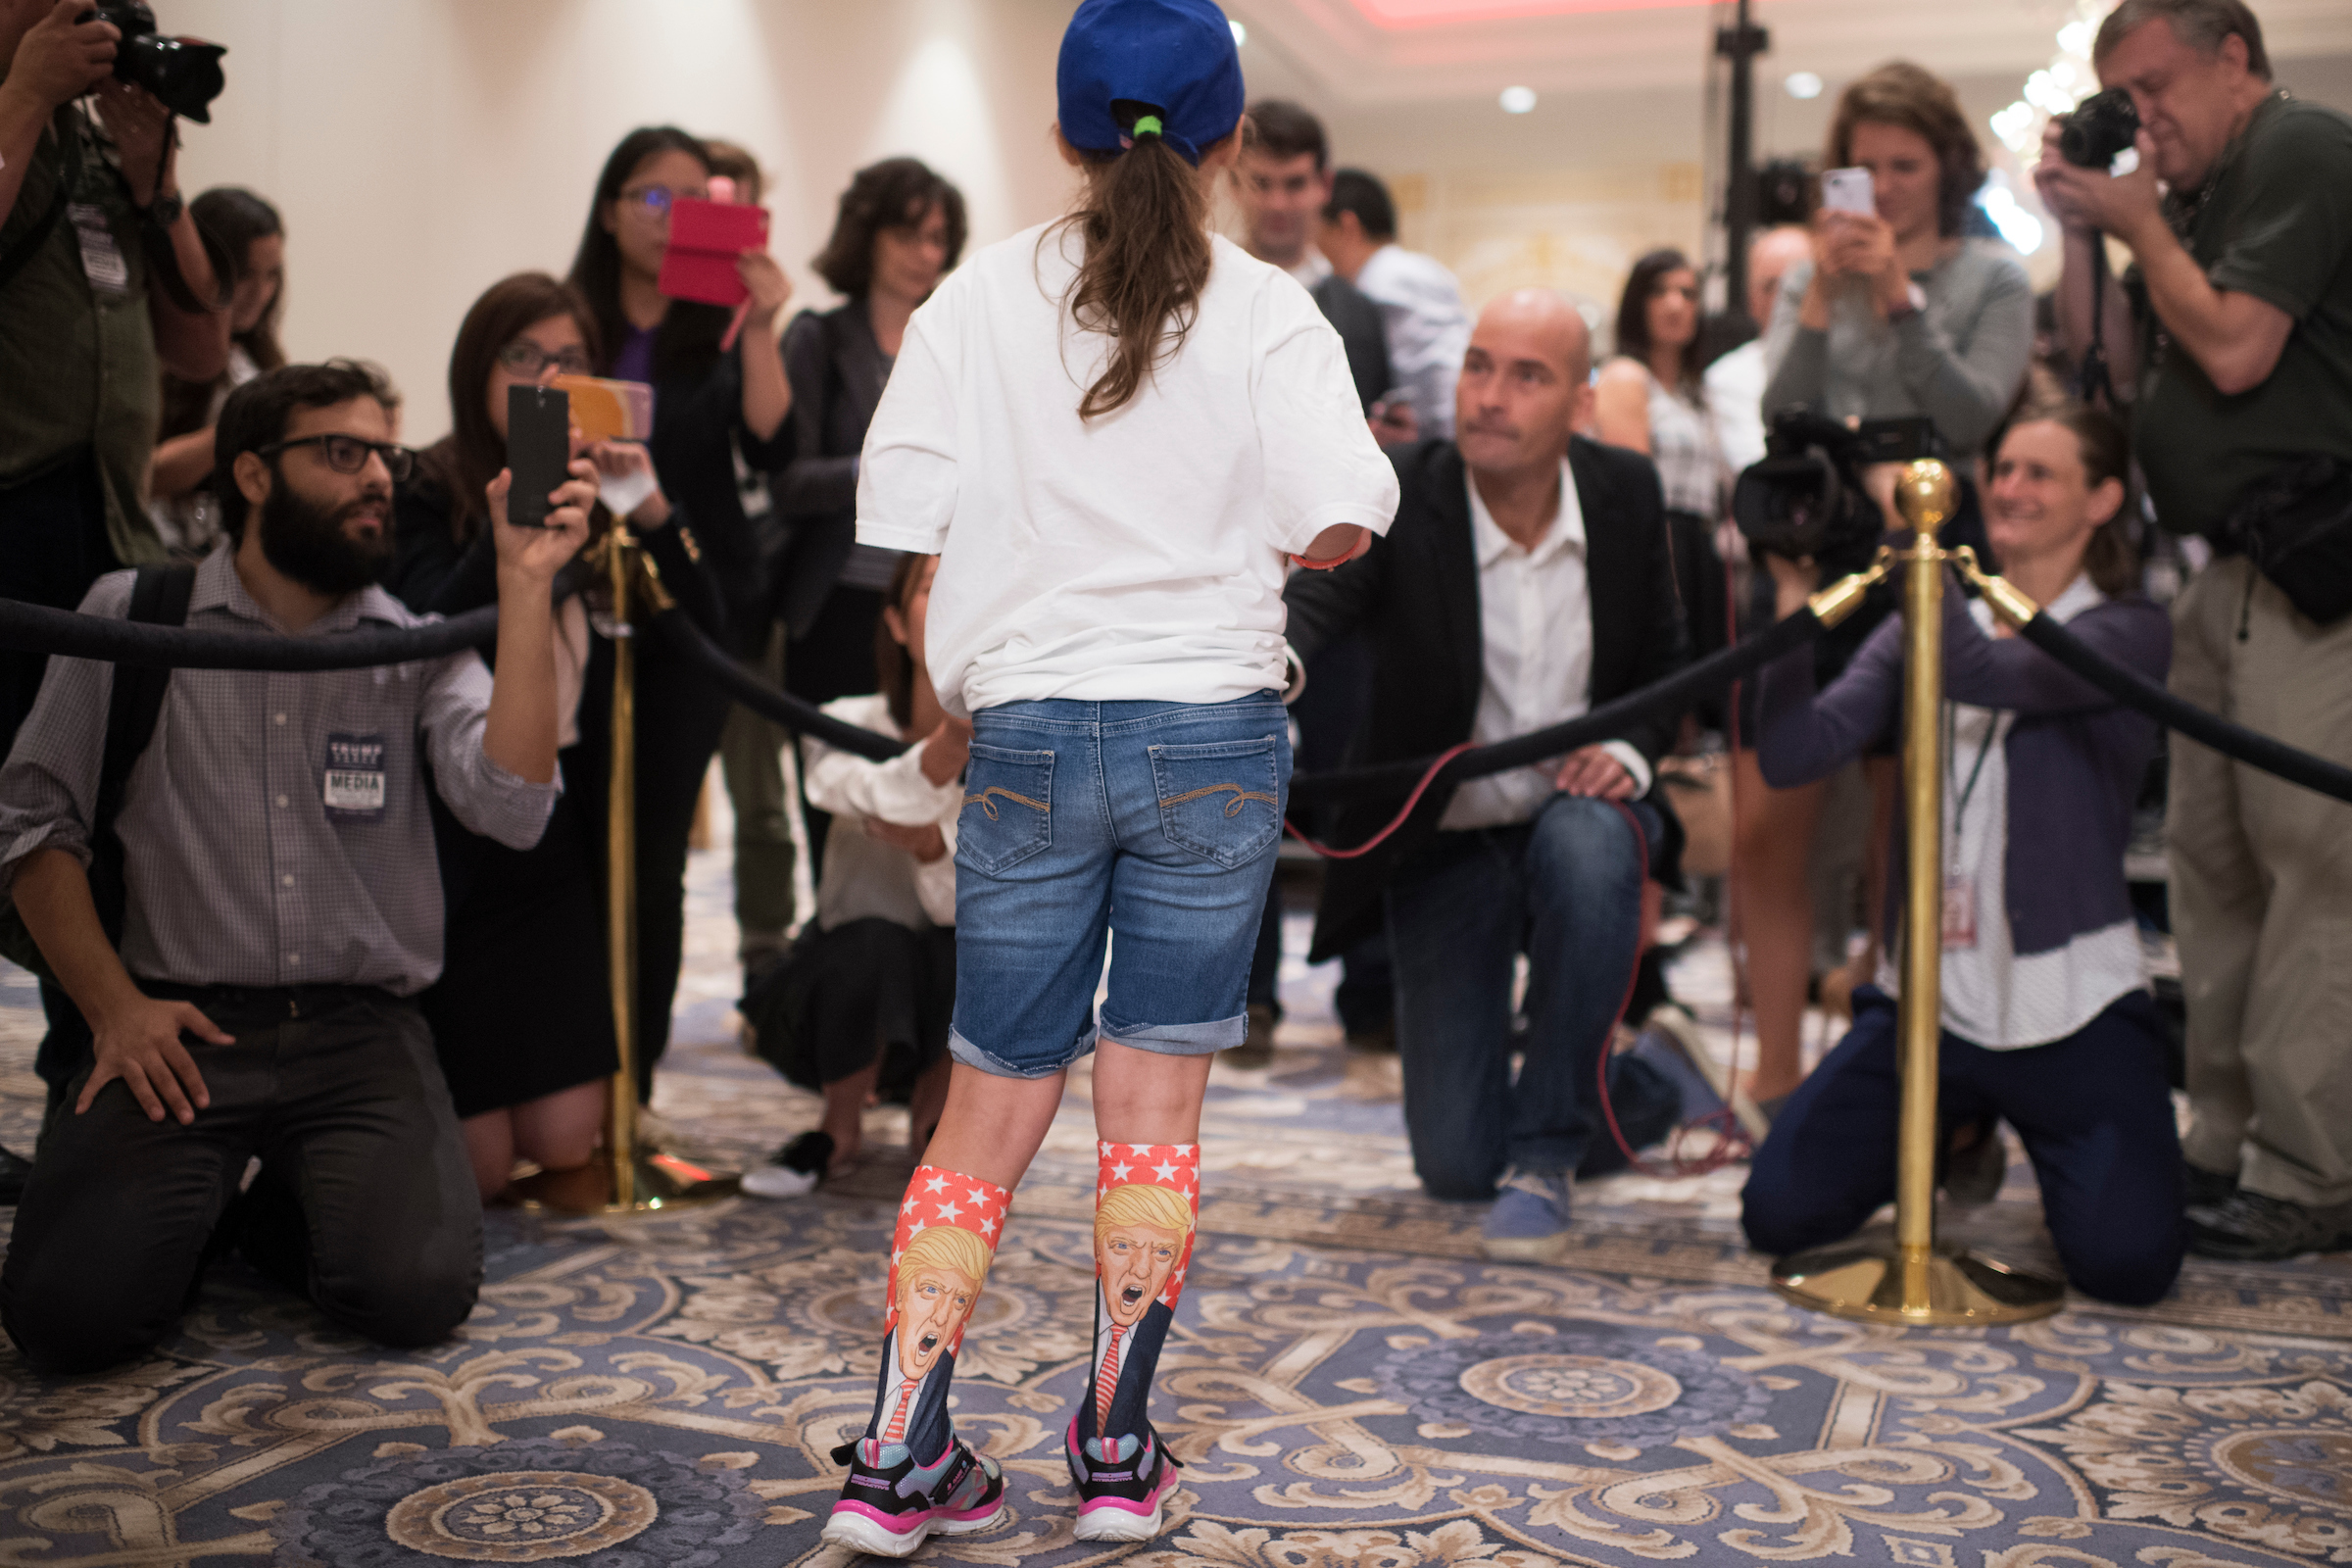 Millie, 11, from Virginia, conducts an impromptu press conference before a campaign event for Republican presidential candidate Donald Trump at the Trump International Hotel in Washington on Friday, Sept. 16, 2016. (Tom Williams/CQ Roll Call)